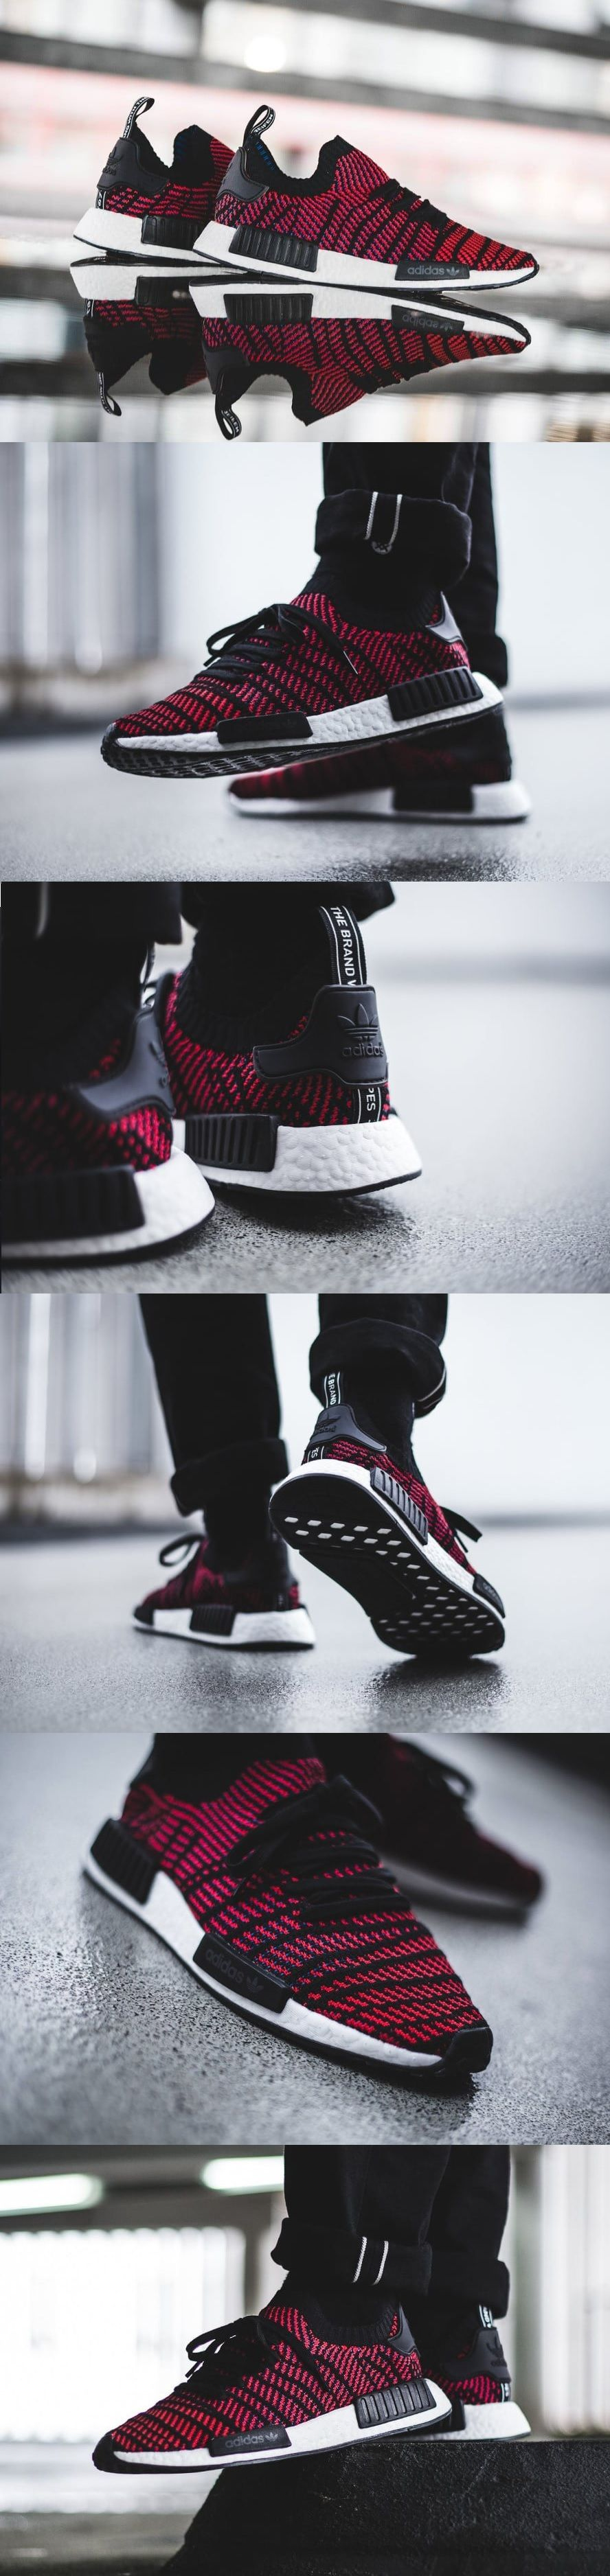 4ffd4f07d  Adidas  NMD R1 STLT PK  Core  Black  Red